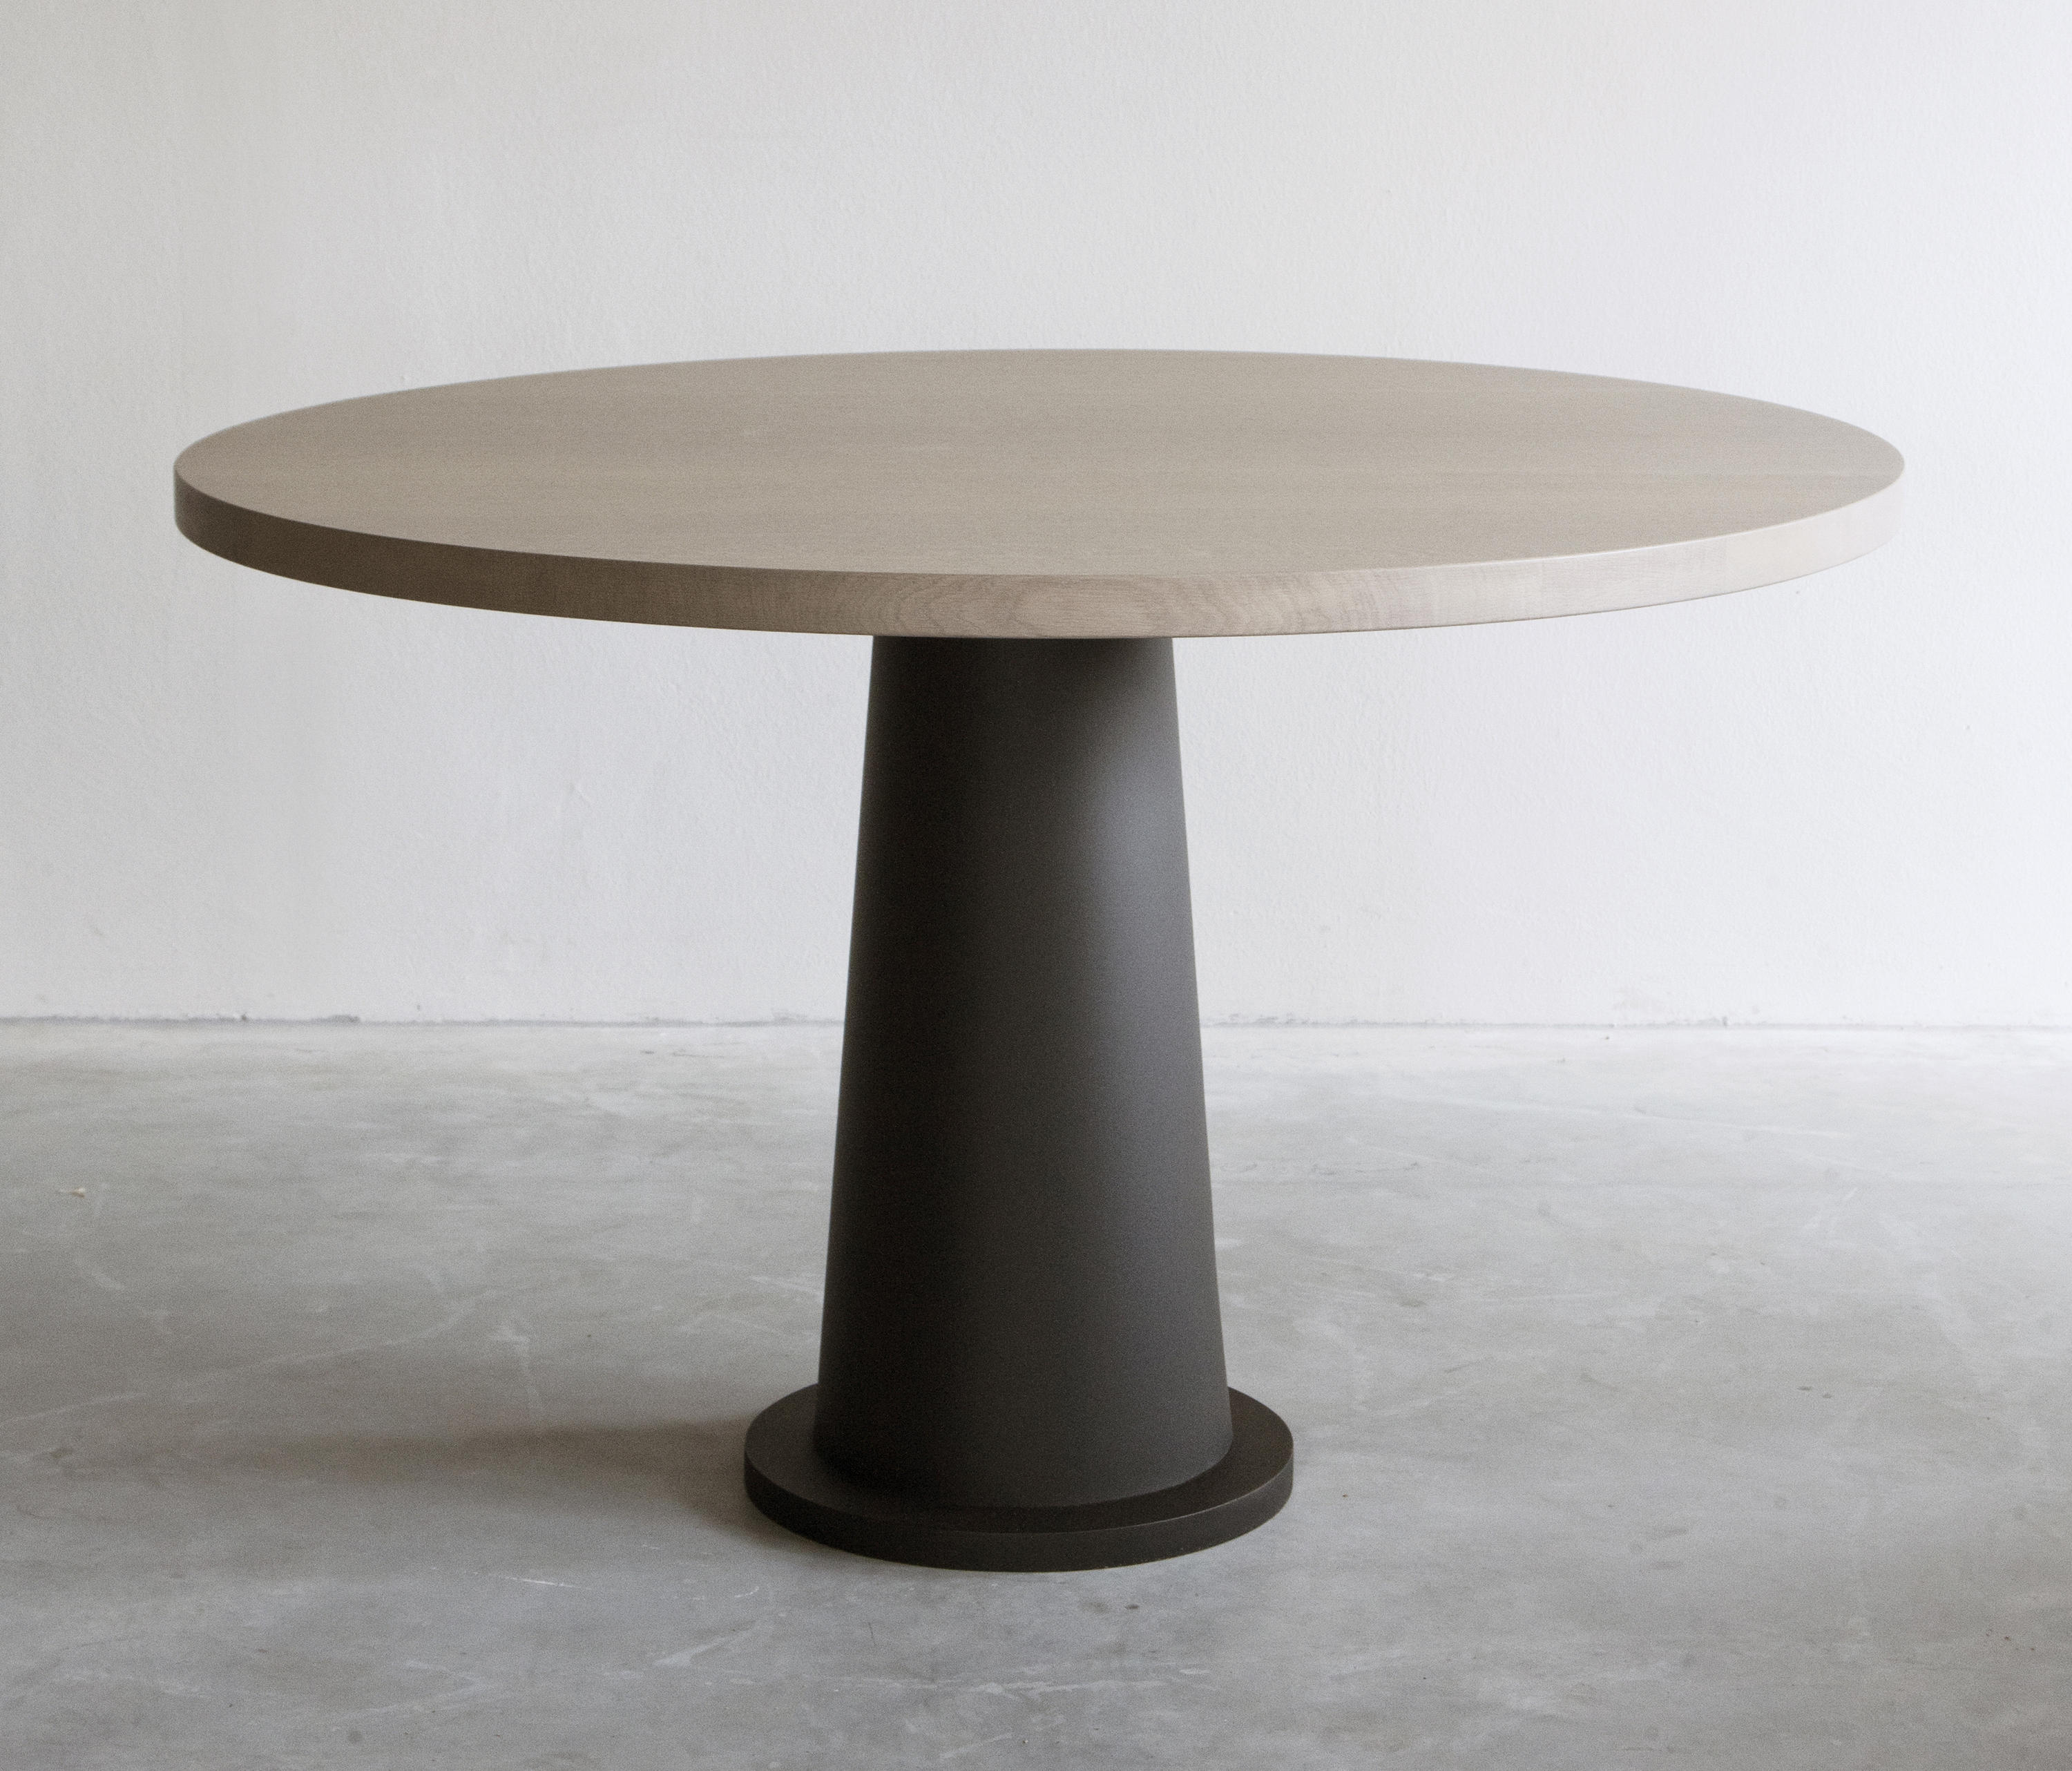 Kops dining table round metal base dining tables from for Dining table base